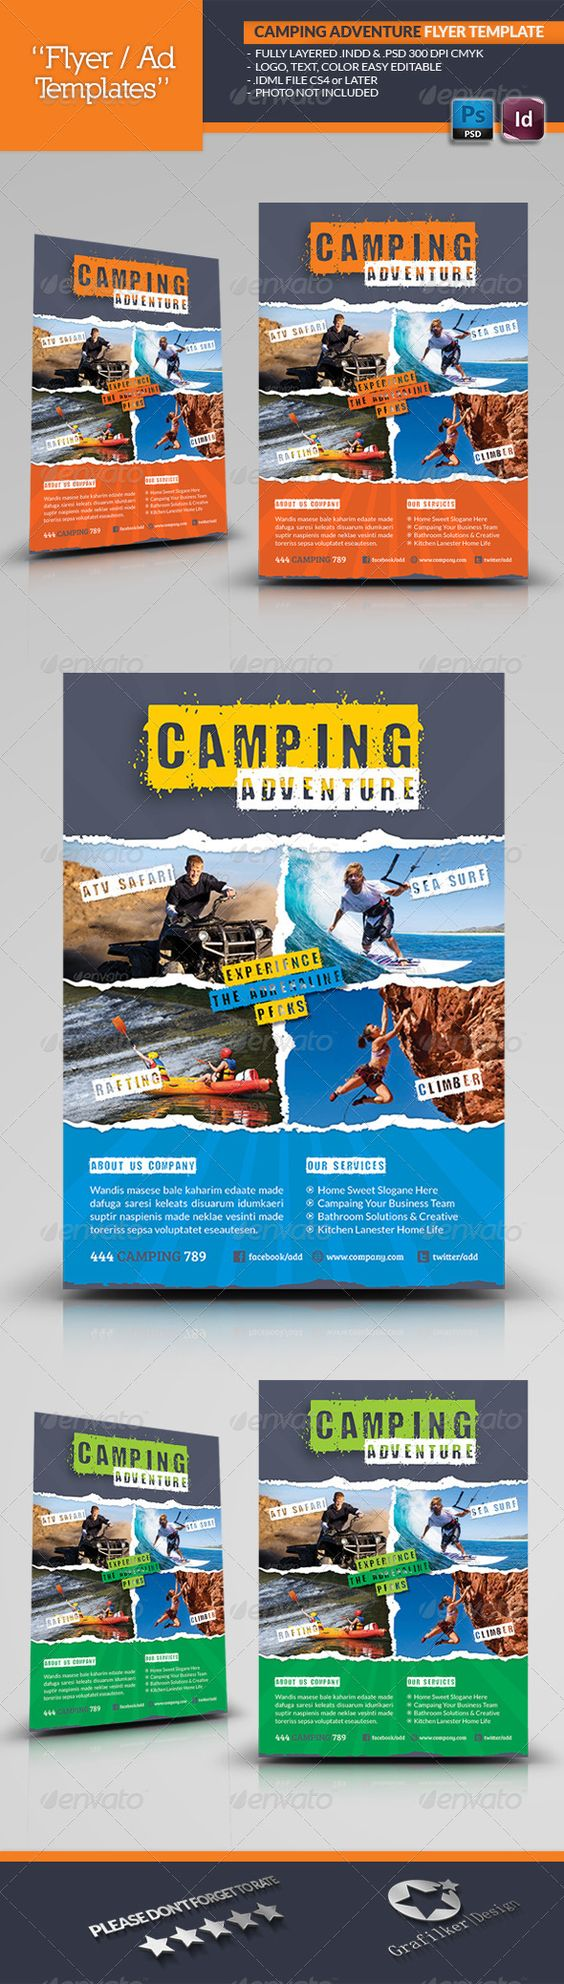 camping adventure flyer template camps student and soccer camping adventure flyer template photoshop psd student tent available here rarr